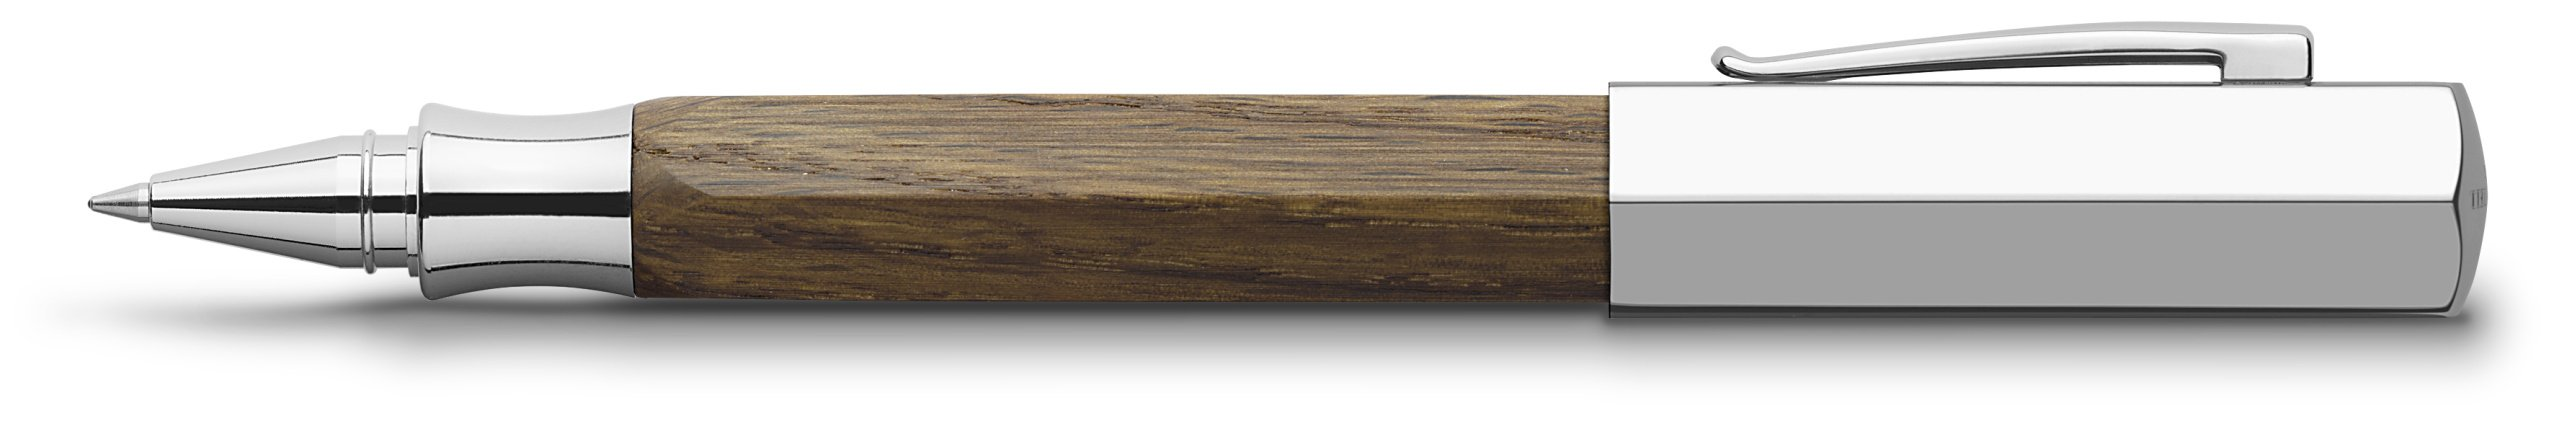 Faber-Castell Ondoro Wood Rollerball by Faber-Castell (Image #1)